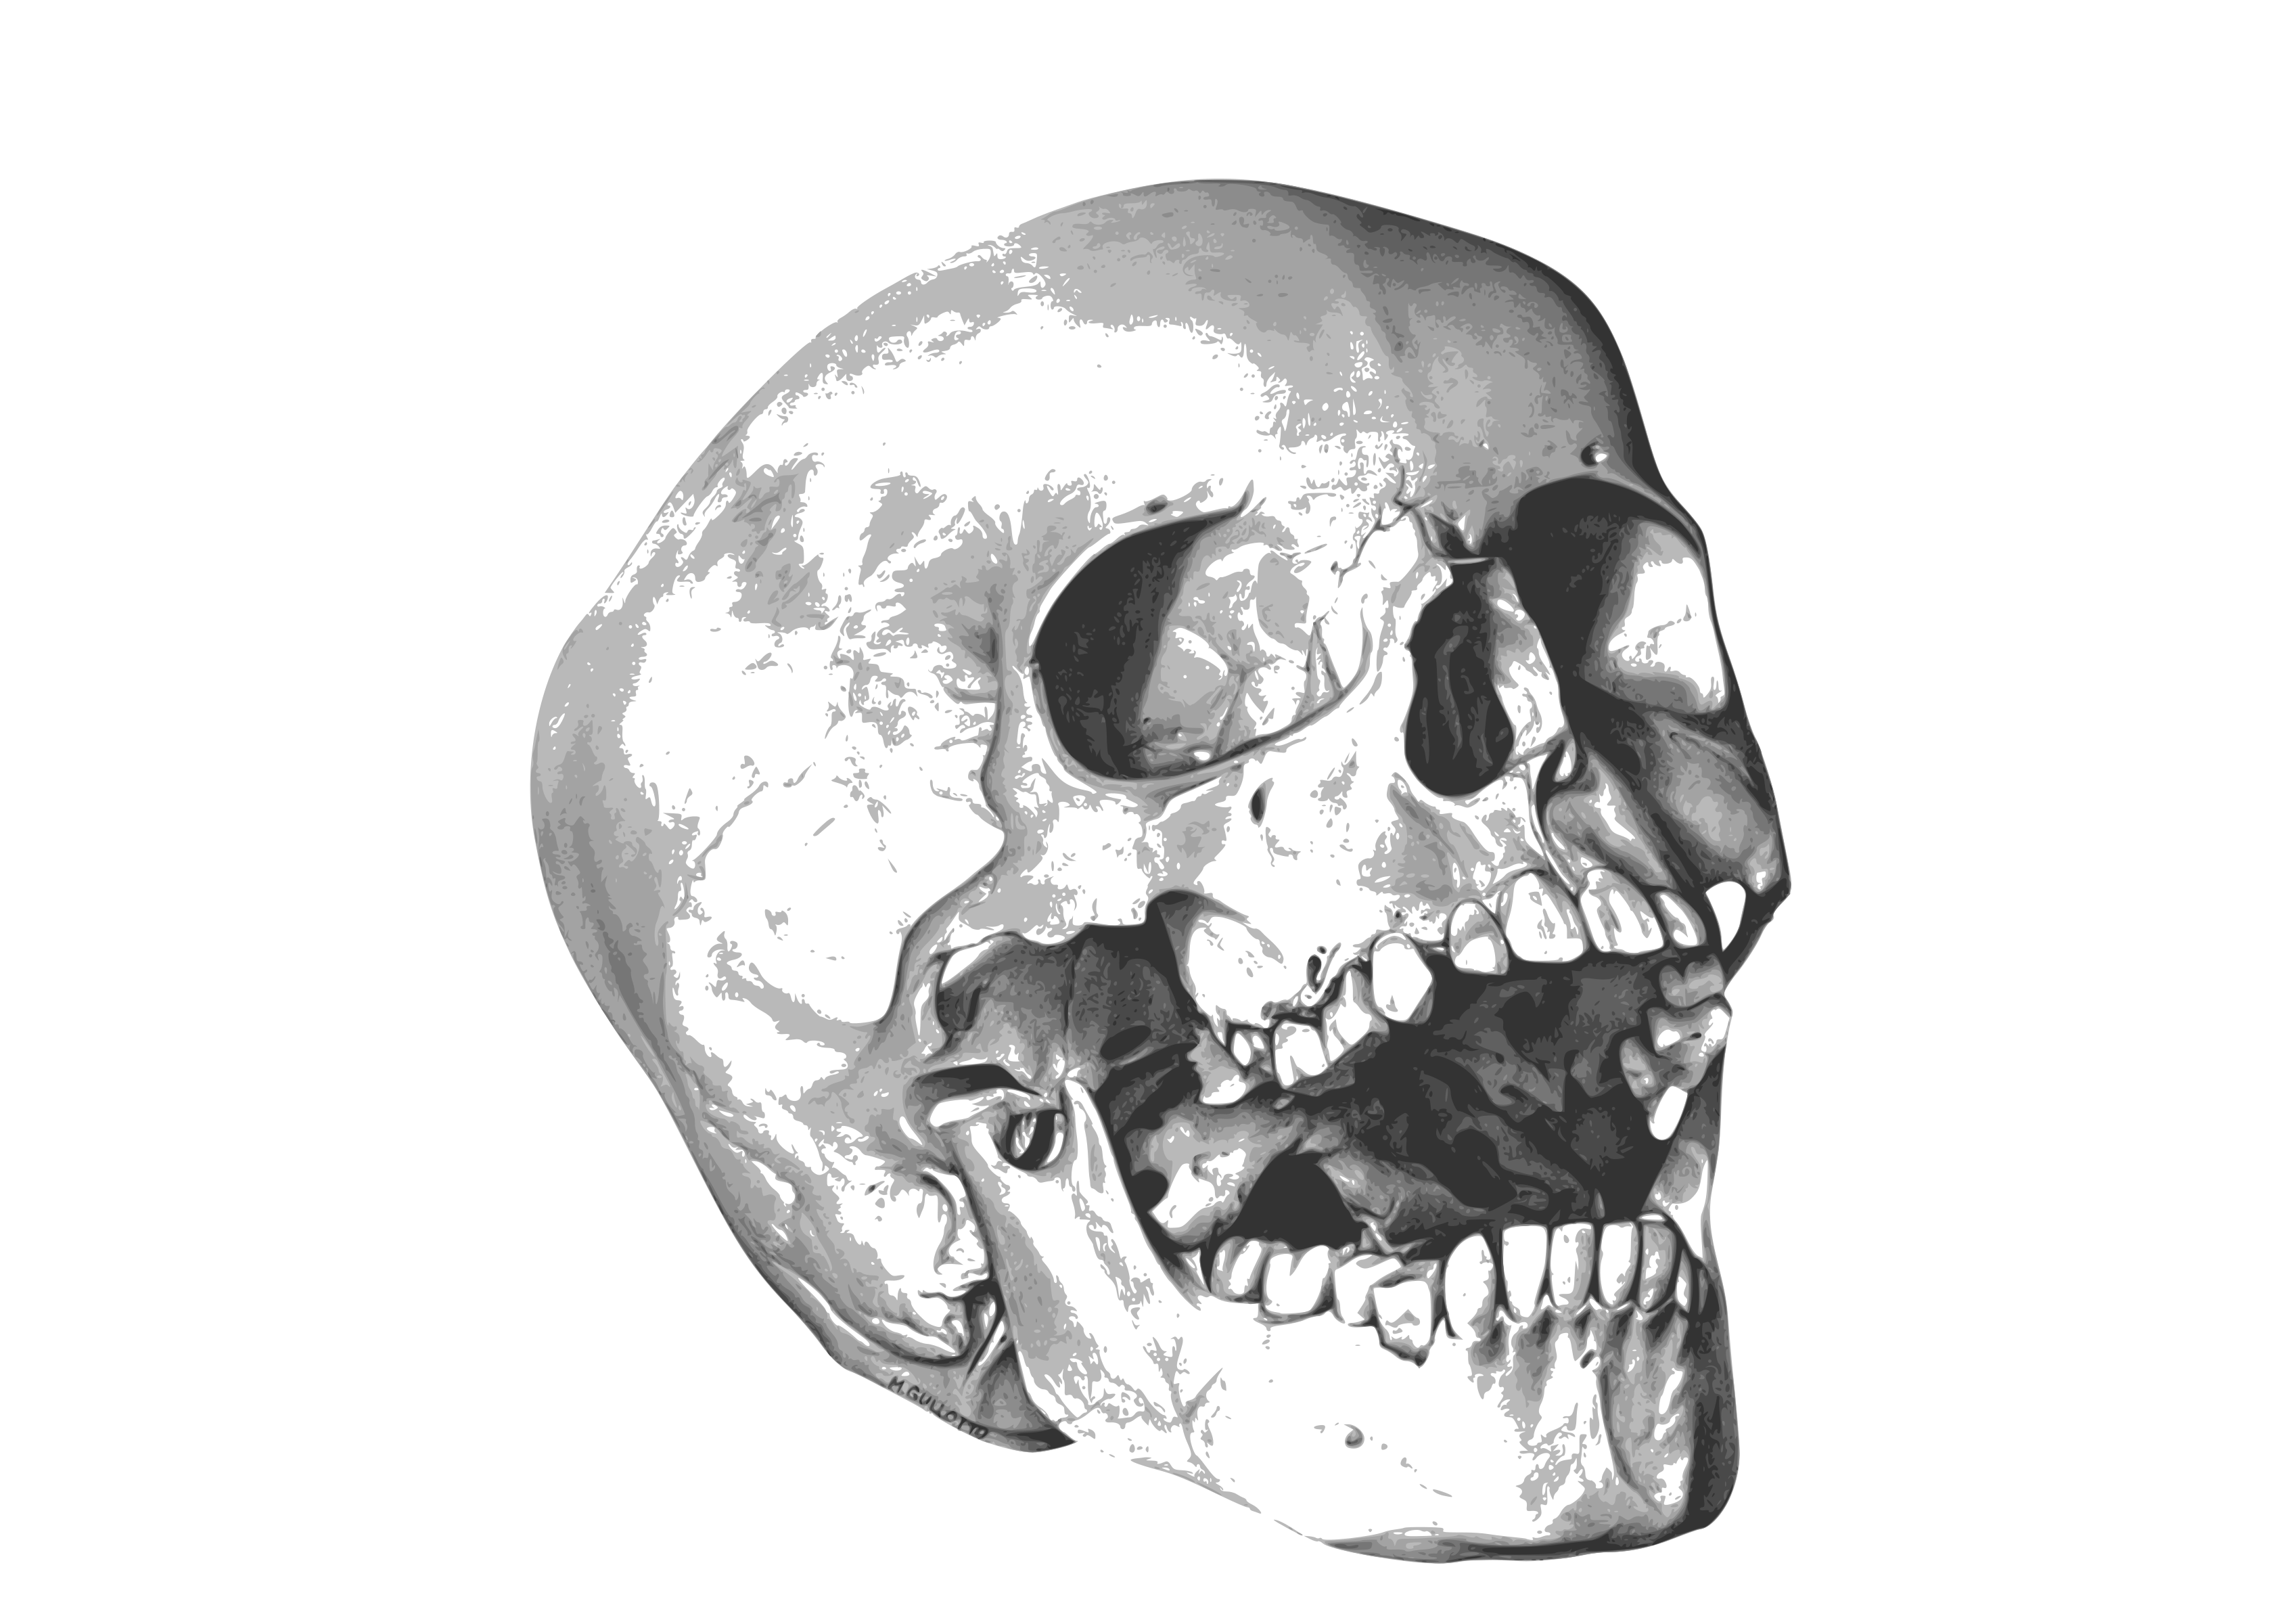 Skull HD Image PNG Images